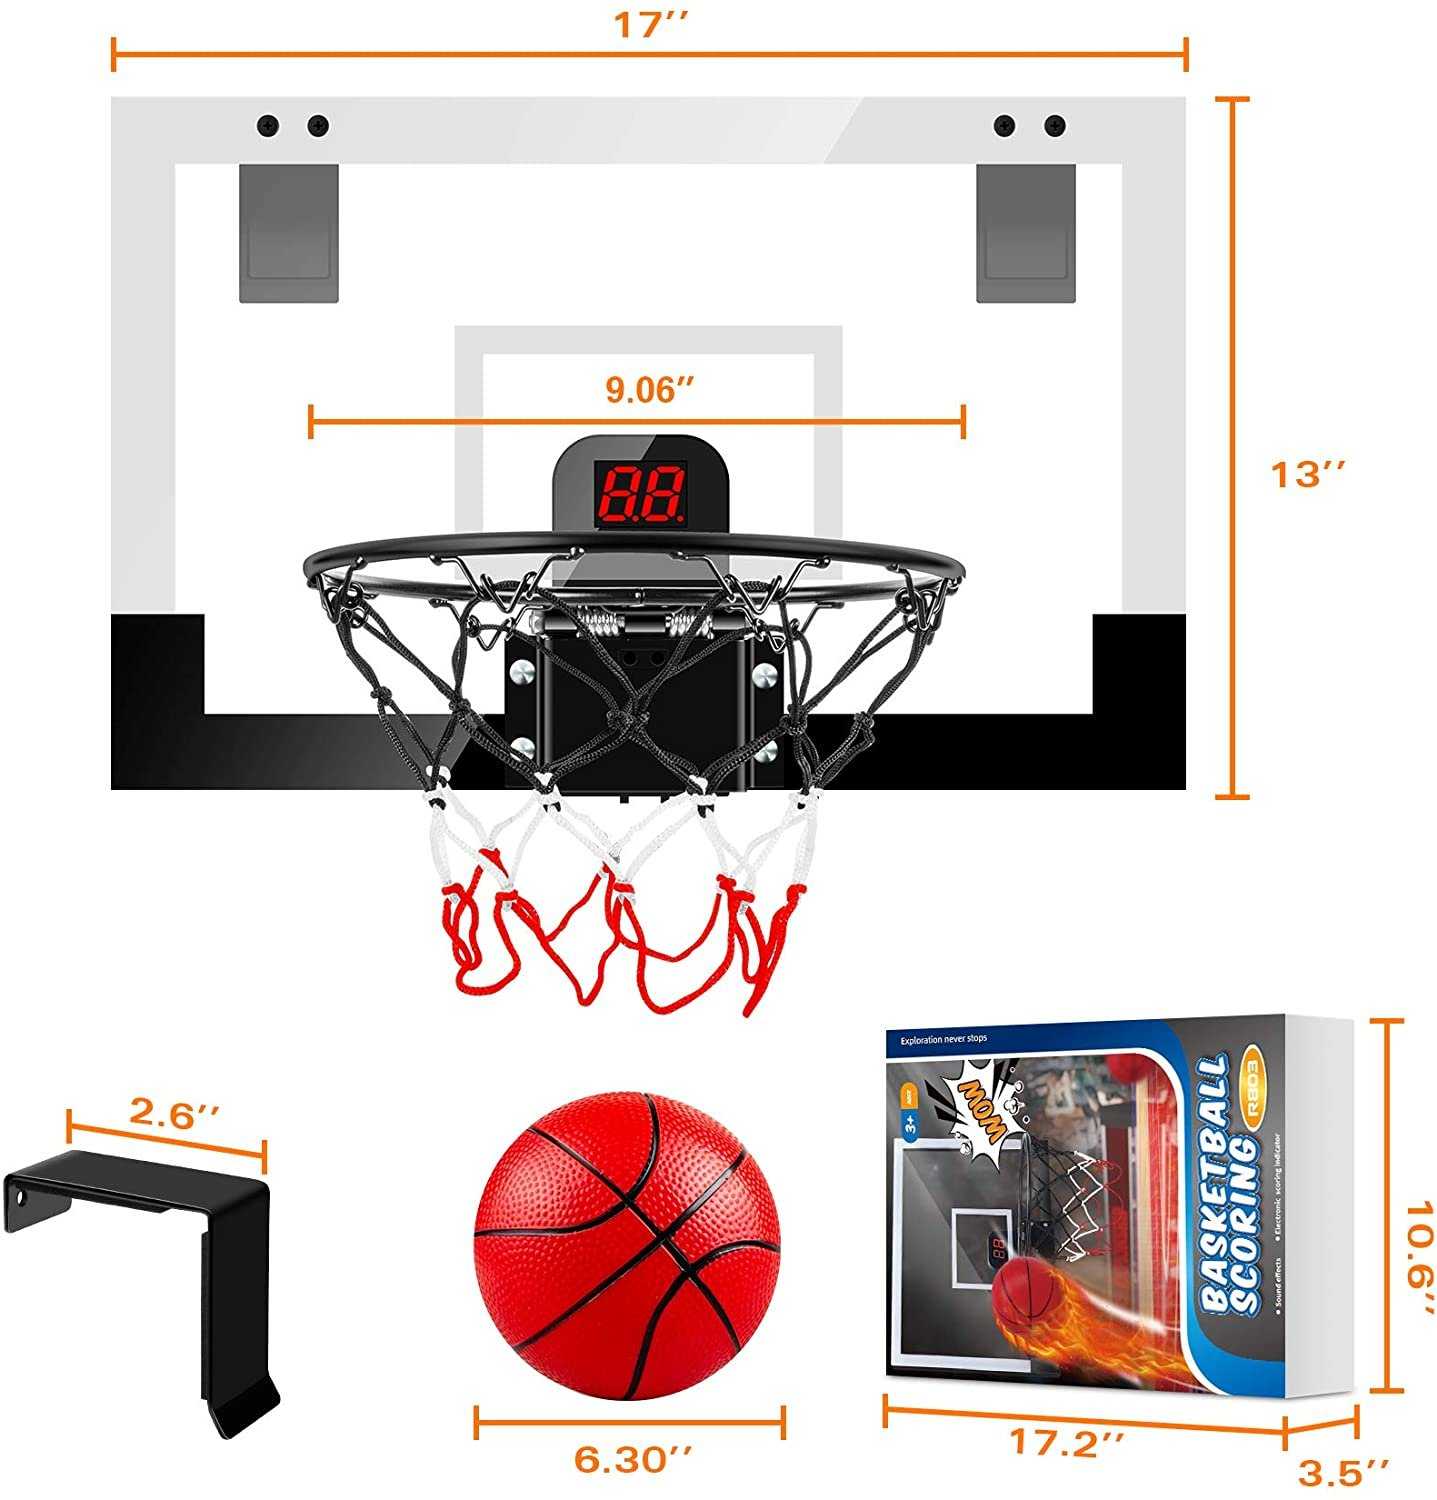 Children's Basketball Toys Hanging Punch-free Automatic Scoring Basketball Board Indoor Toy